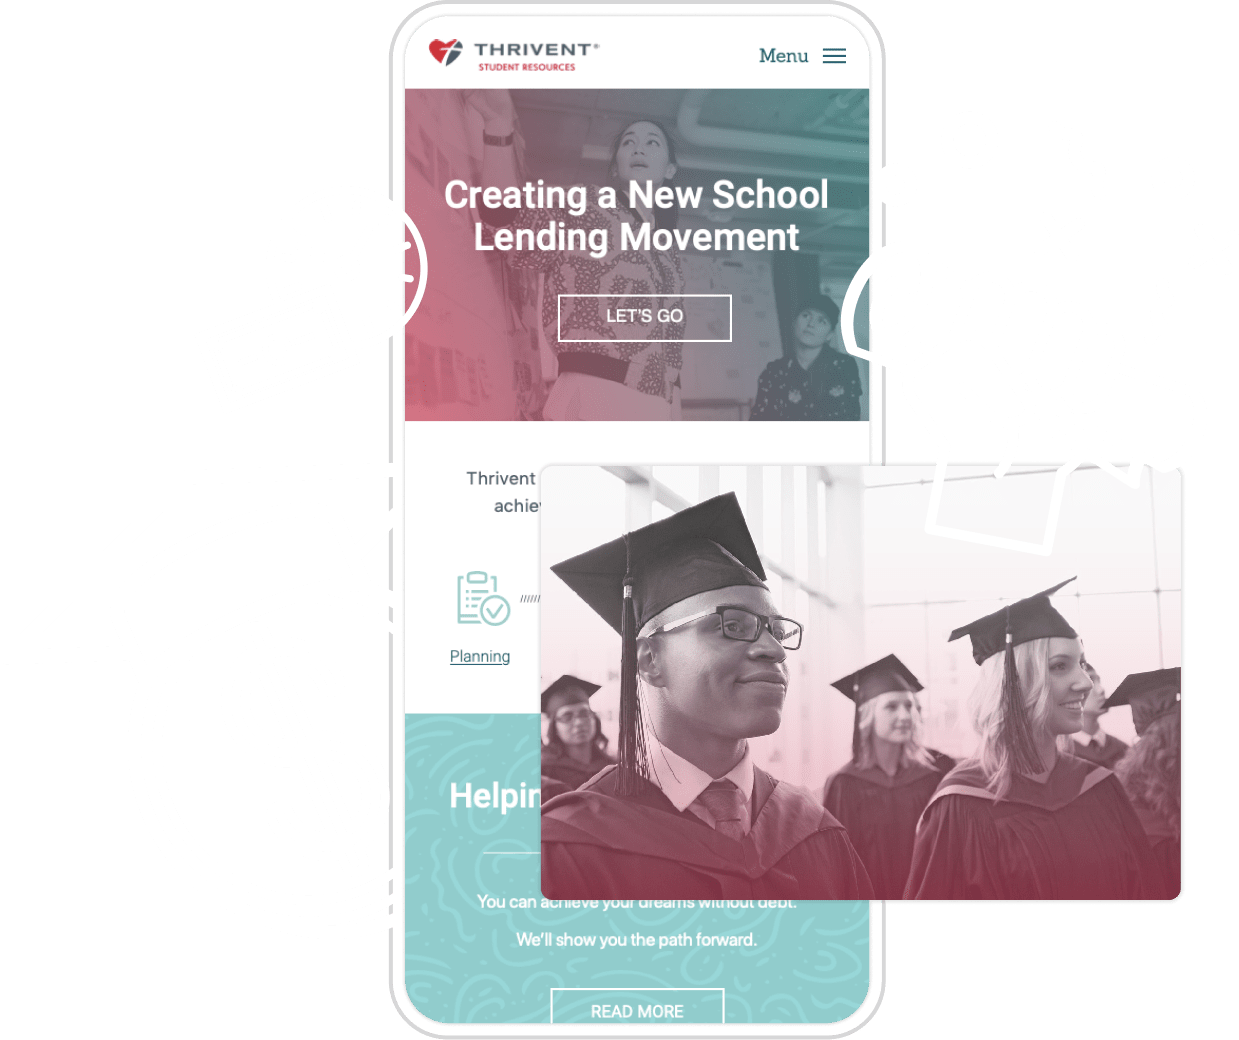 Thrivent mobile view with a photo of graduates at the front. White icons overlayed: a clock, dollar sign, degree